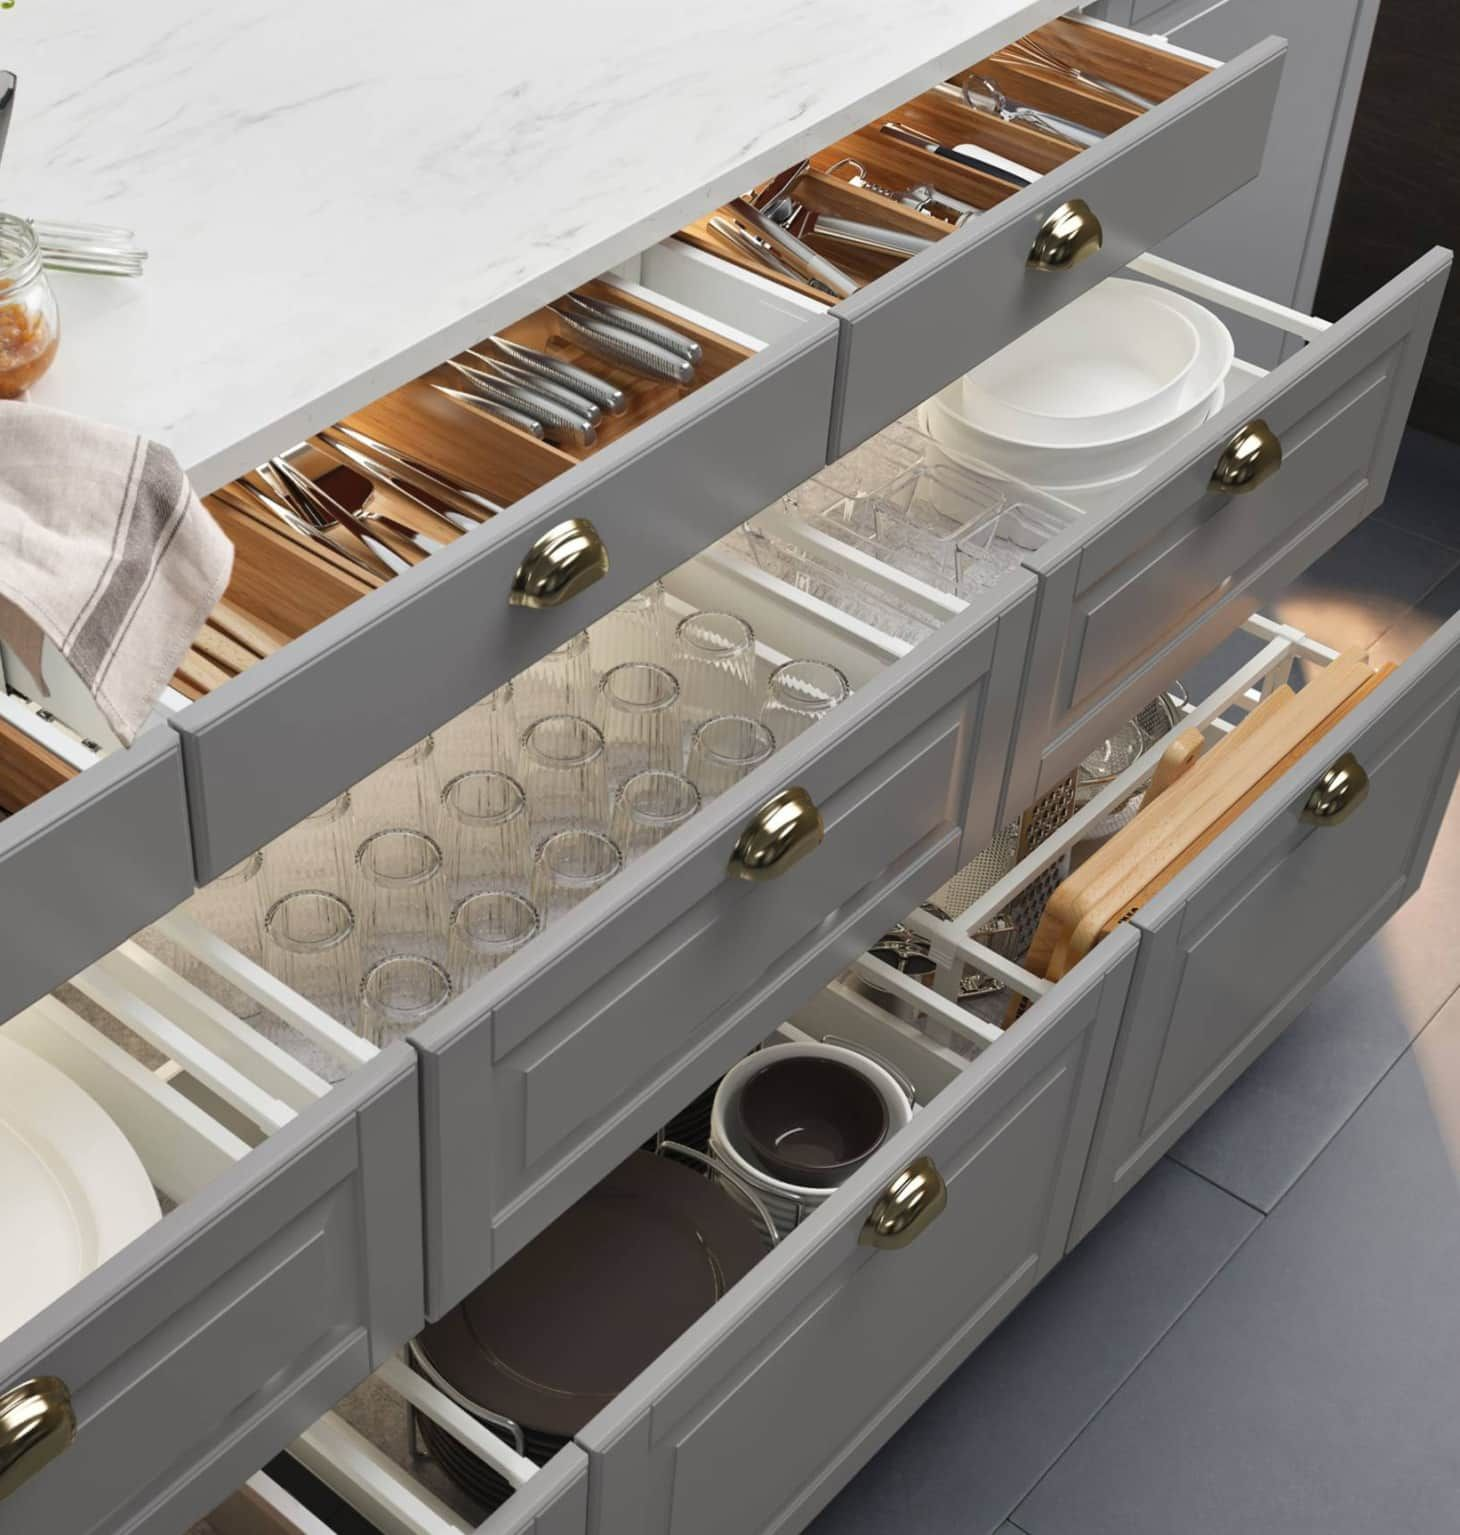 The 10 Most Organized Drawers on the Internet #kitchencabinetsorganization